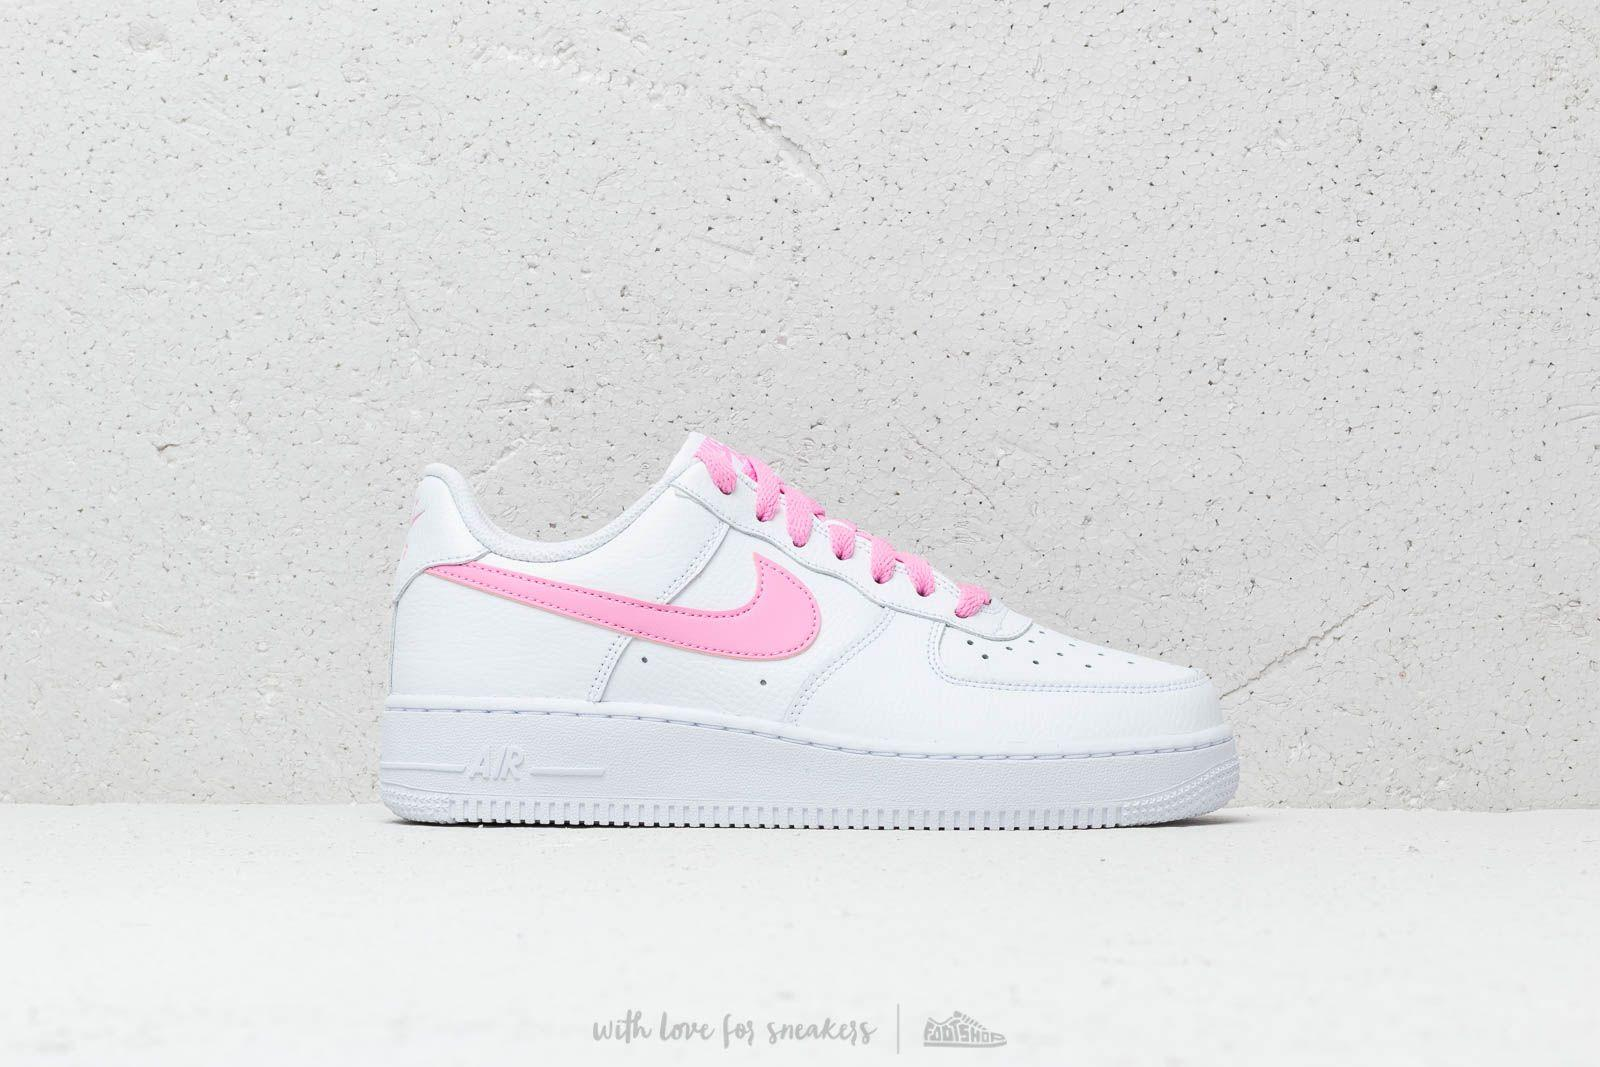 premium selection 9b333 b7fca Nike Air Force 1 07 Leather Trainers In White Psychic Pink. Gallery